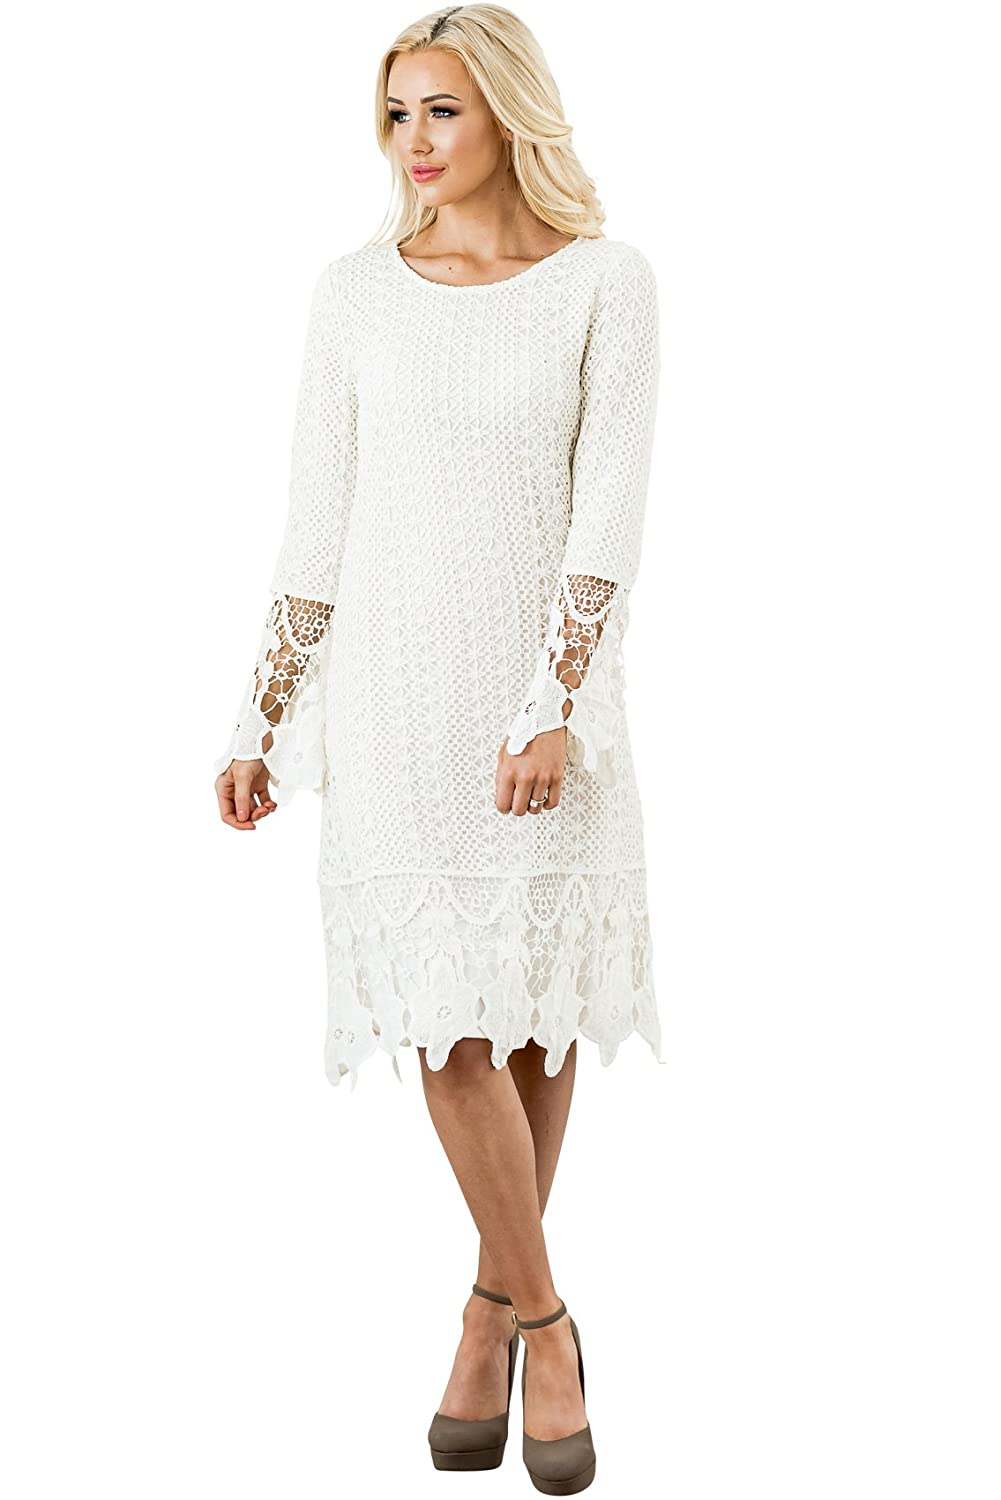 f7735e8ff1dc Absolutely stunning modest knee-length dress with pretty details - crochet  lace overlay, floral cutout fringe hemline & bell sleeves!